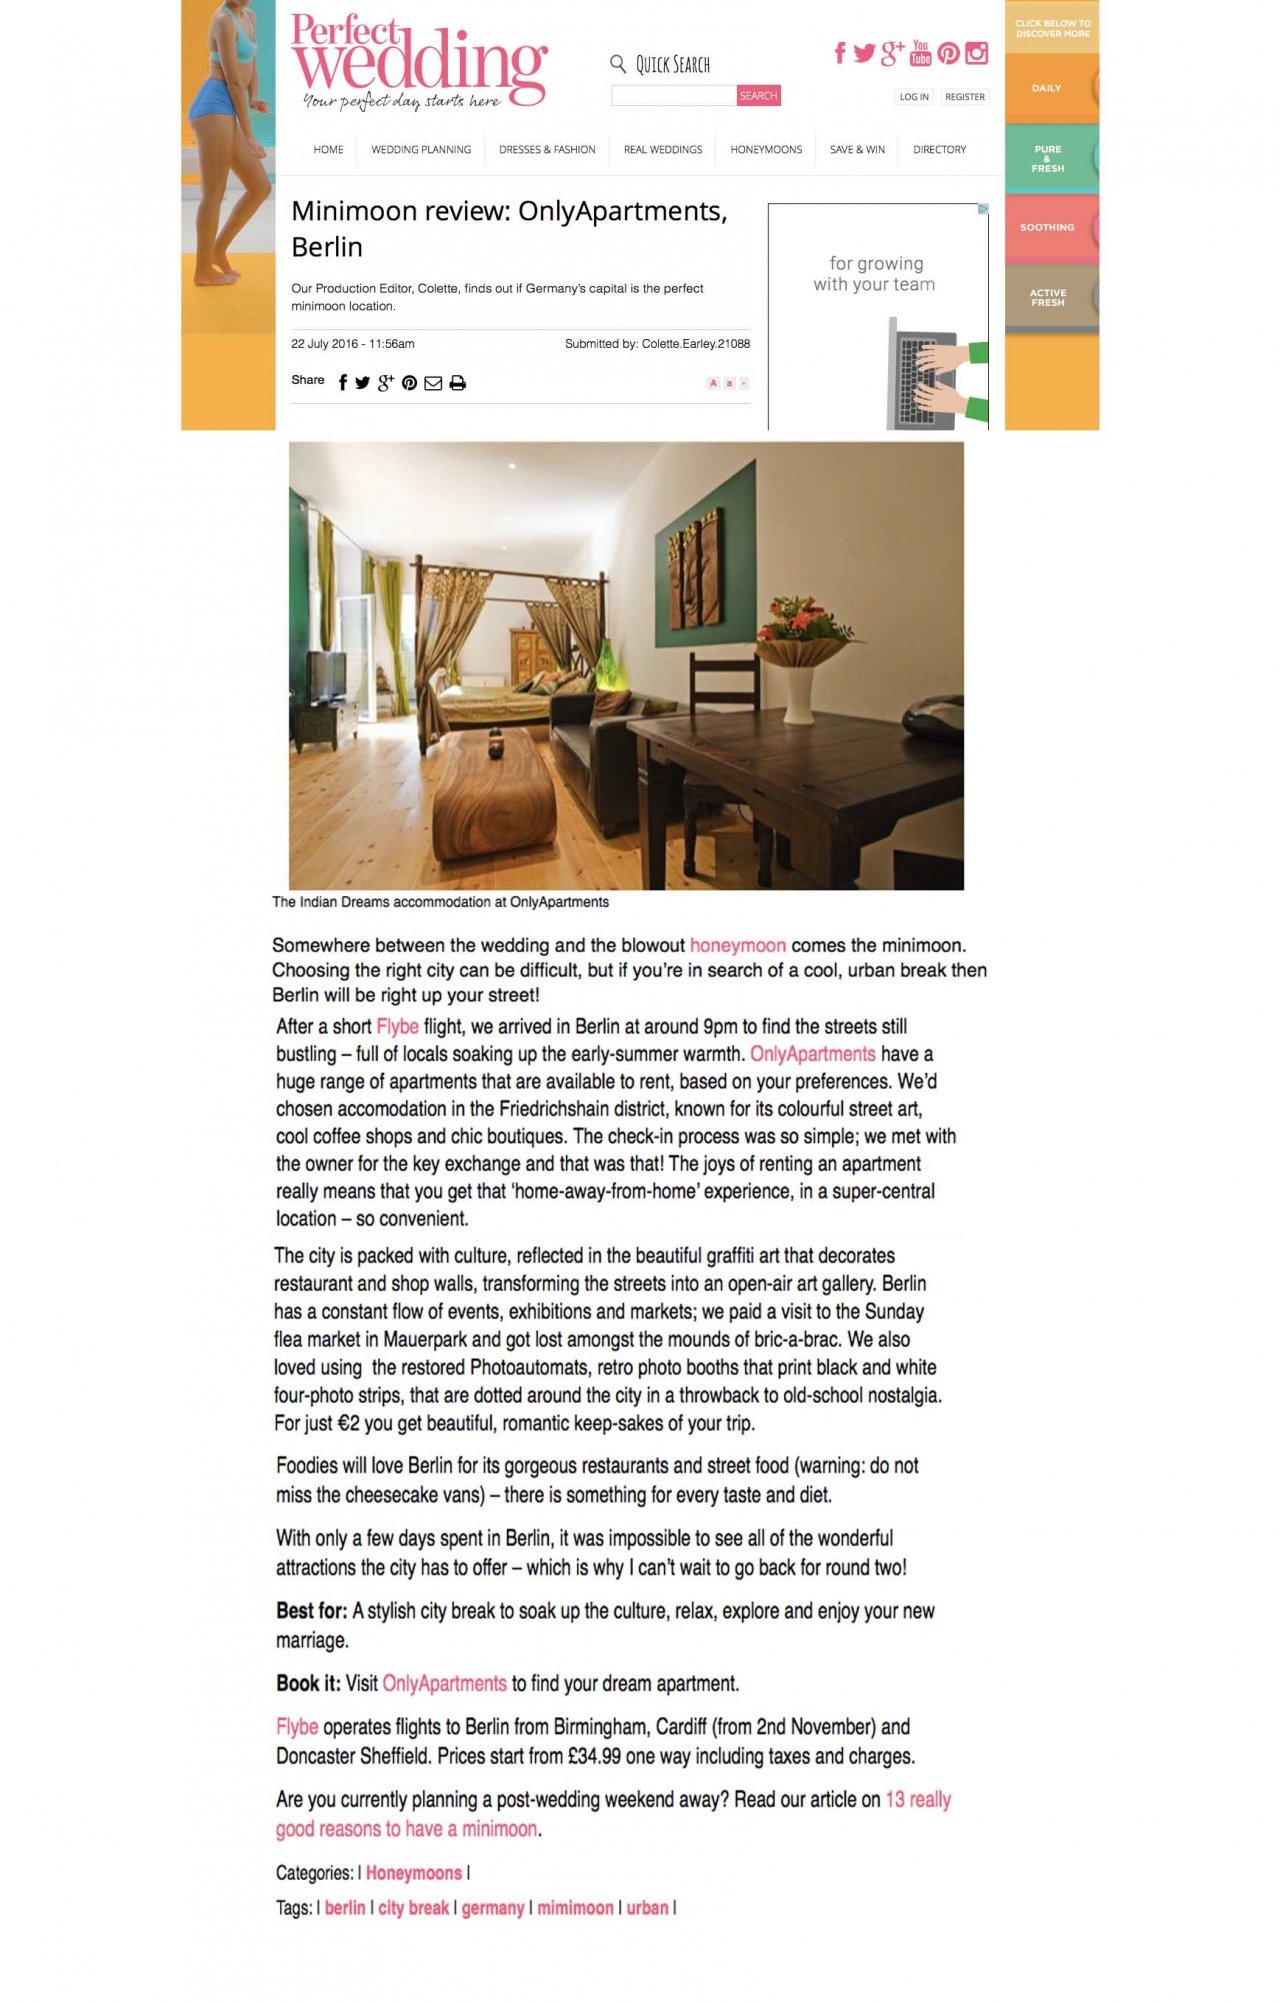 Only-apartments in Perfect Wedding magazine